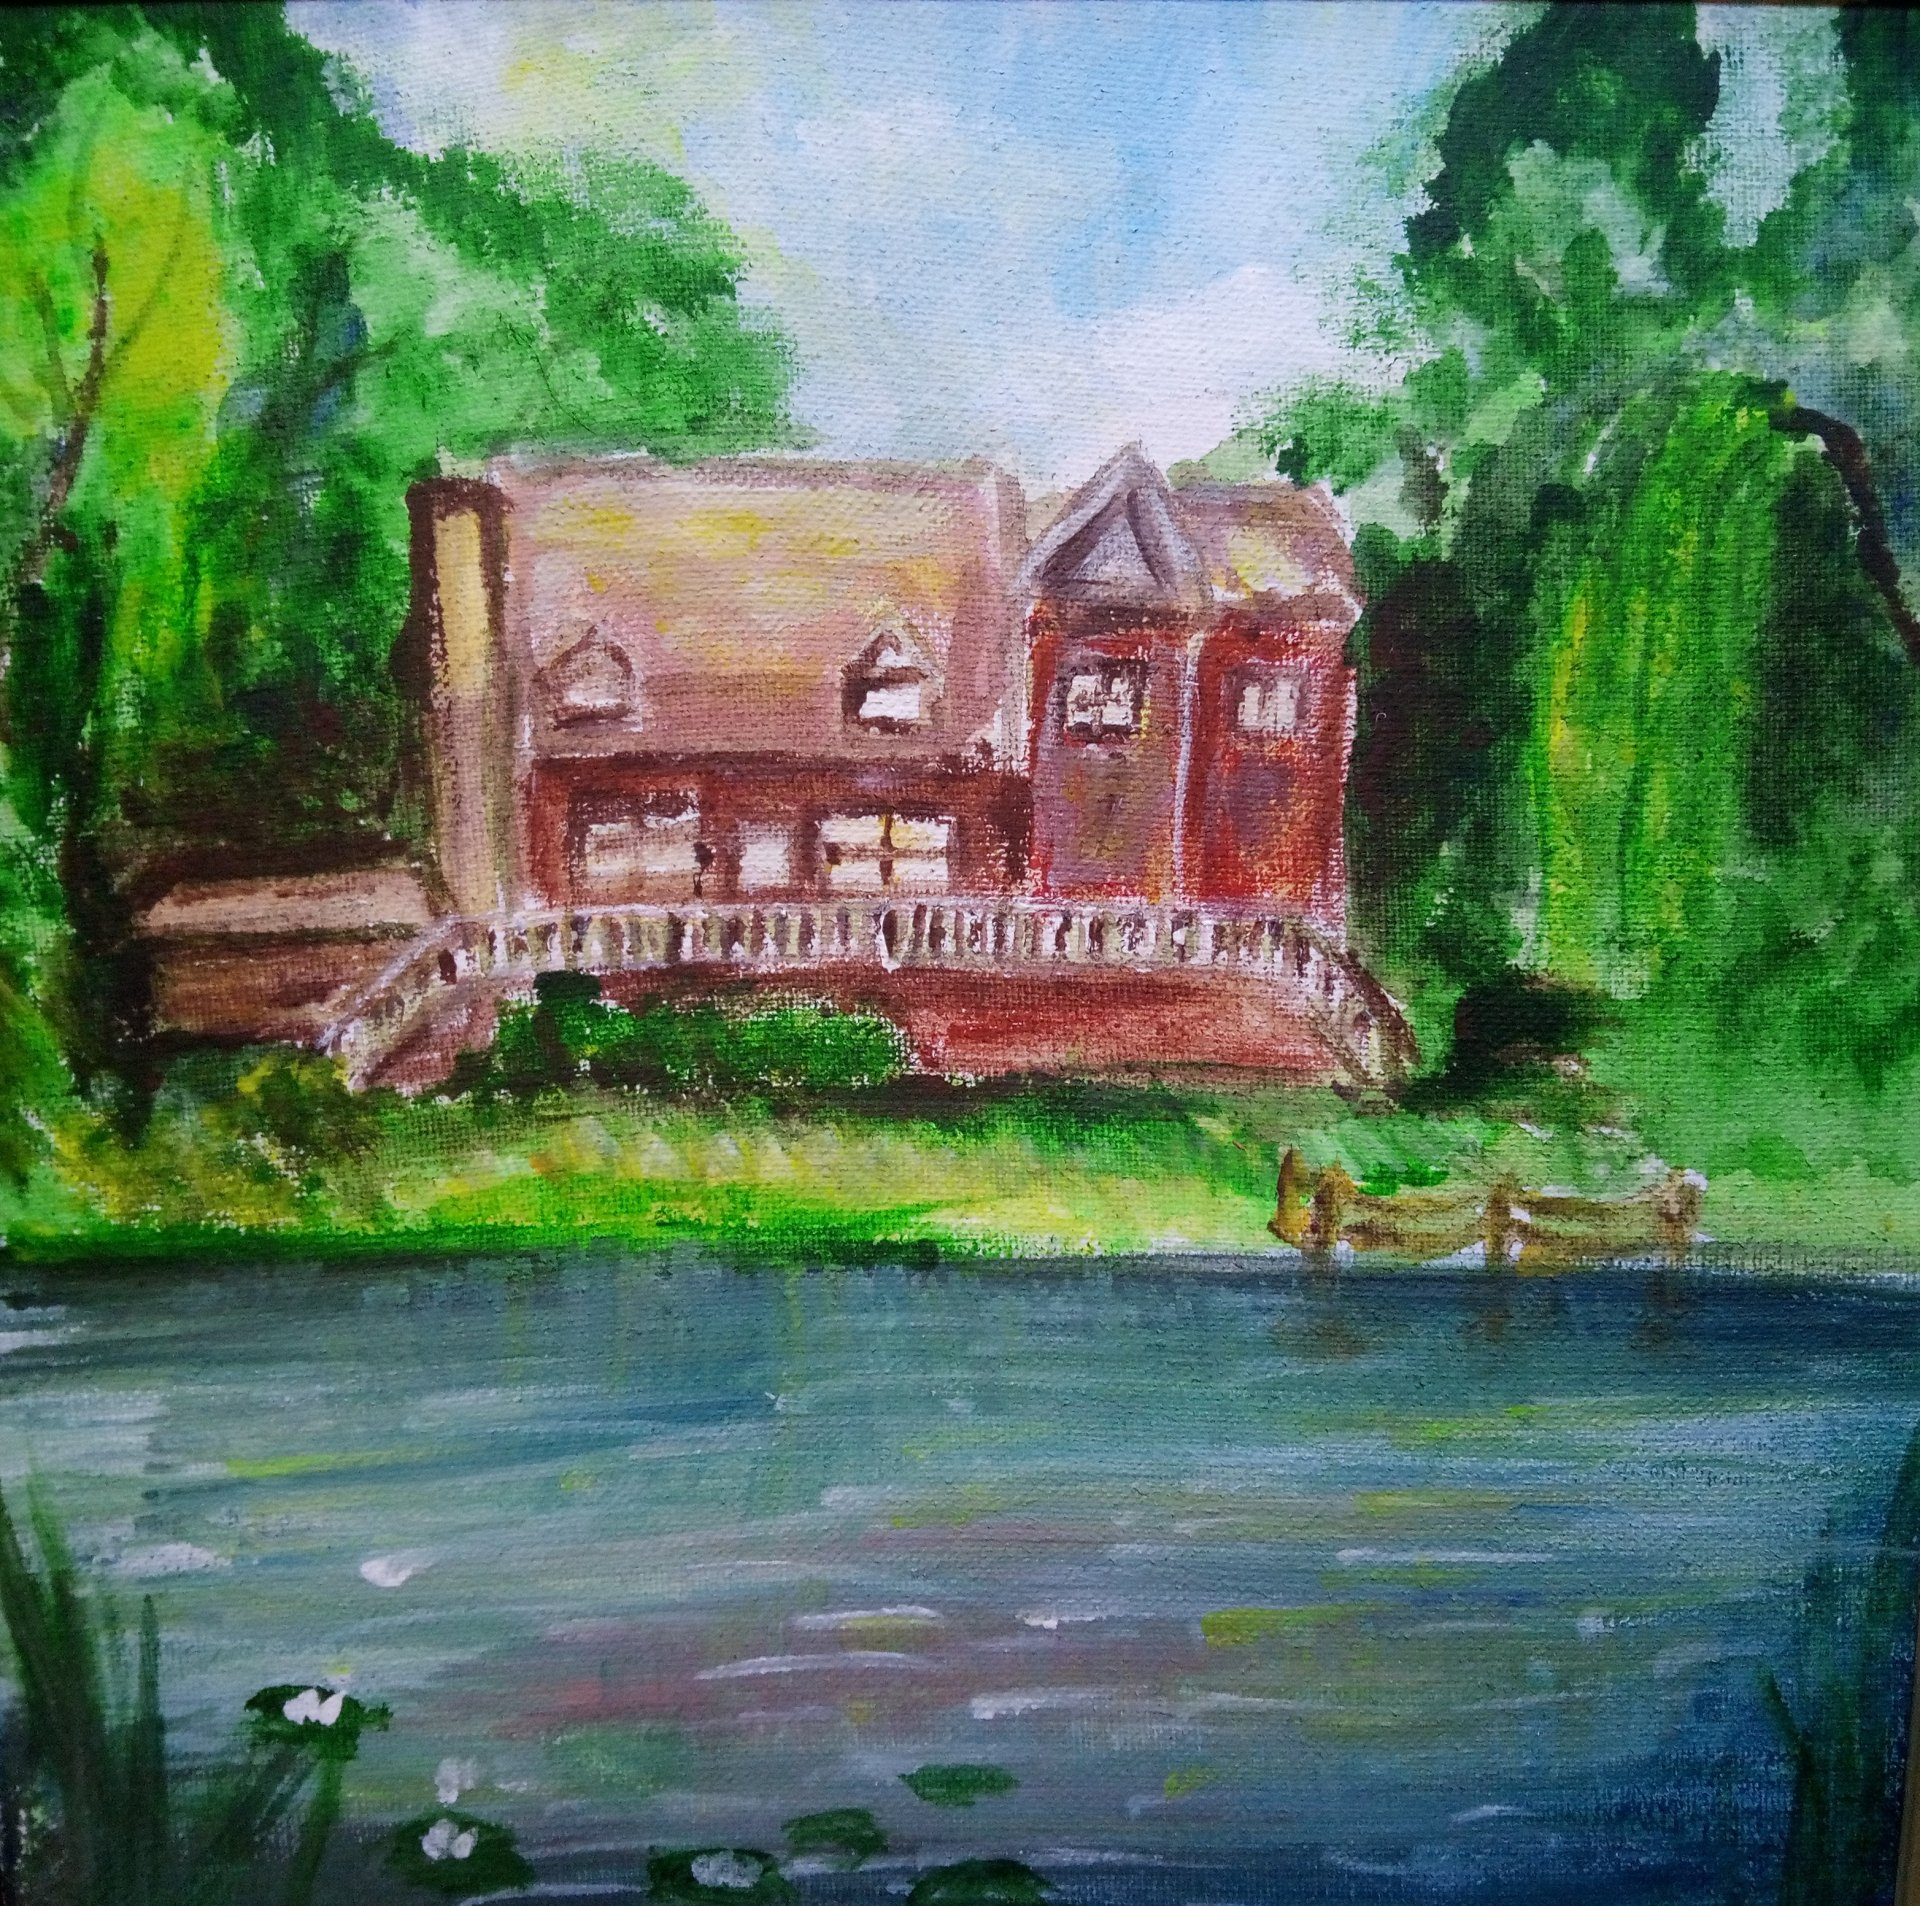 House in the woods by the lake